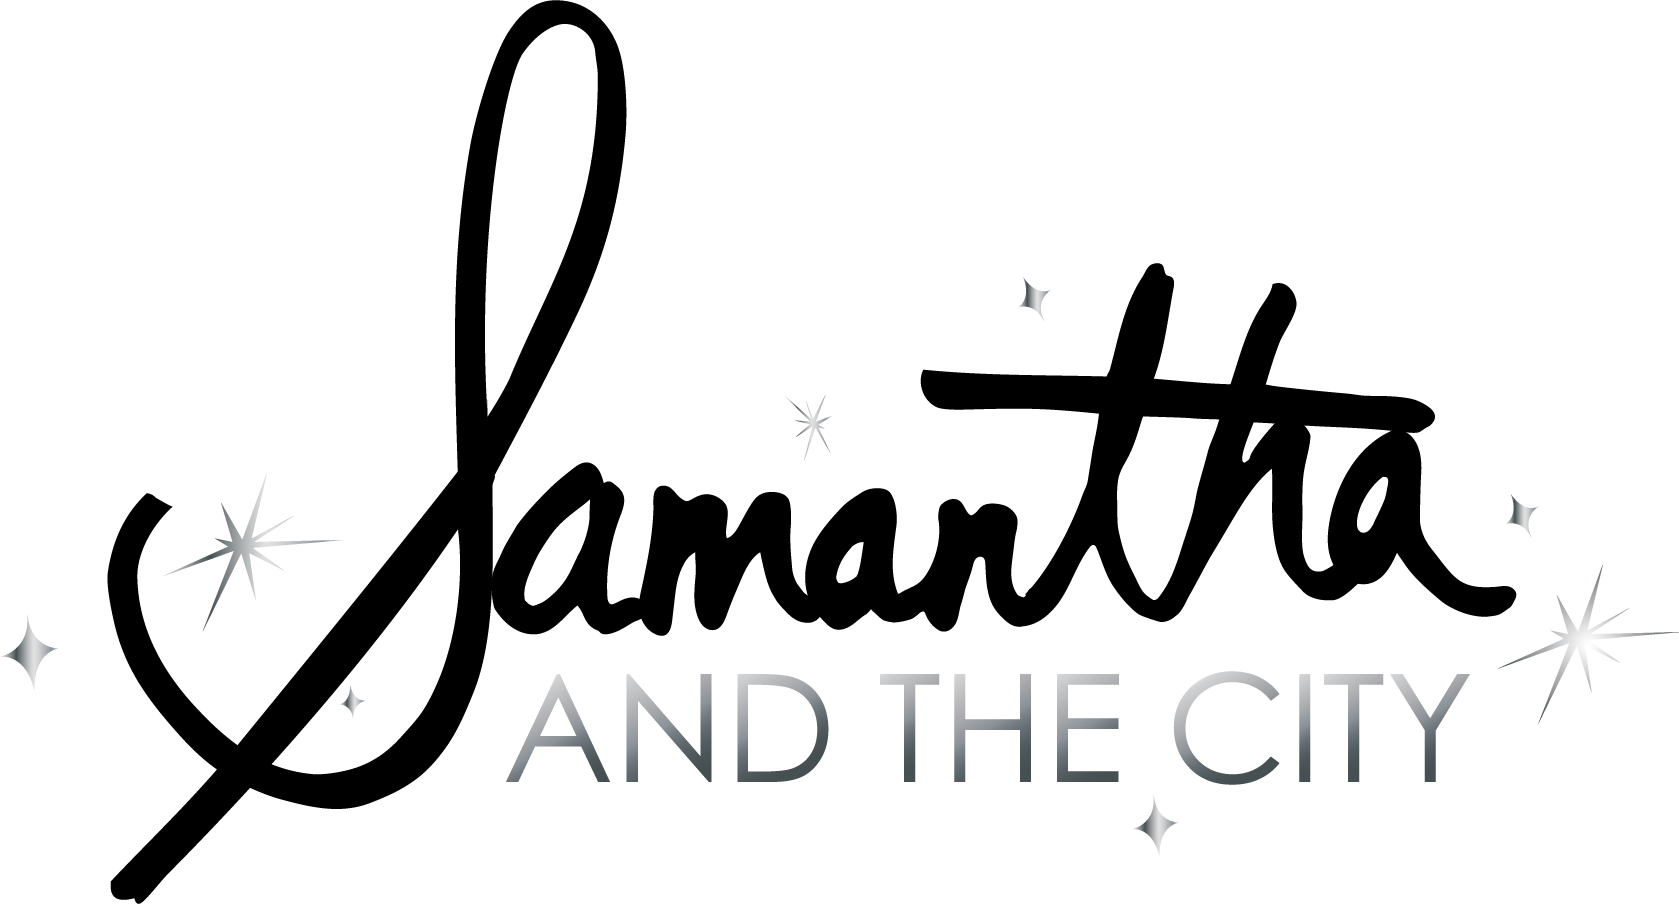 samantha signature logo final copy.png